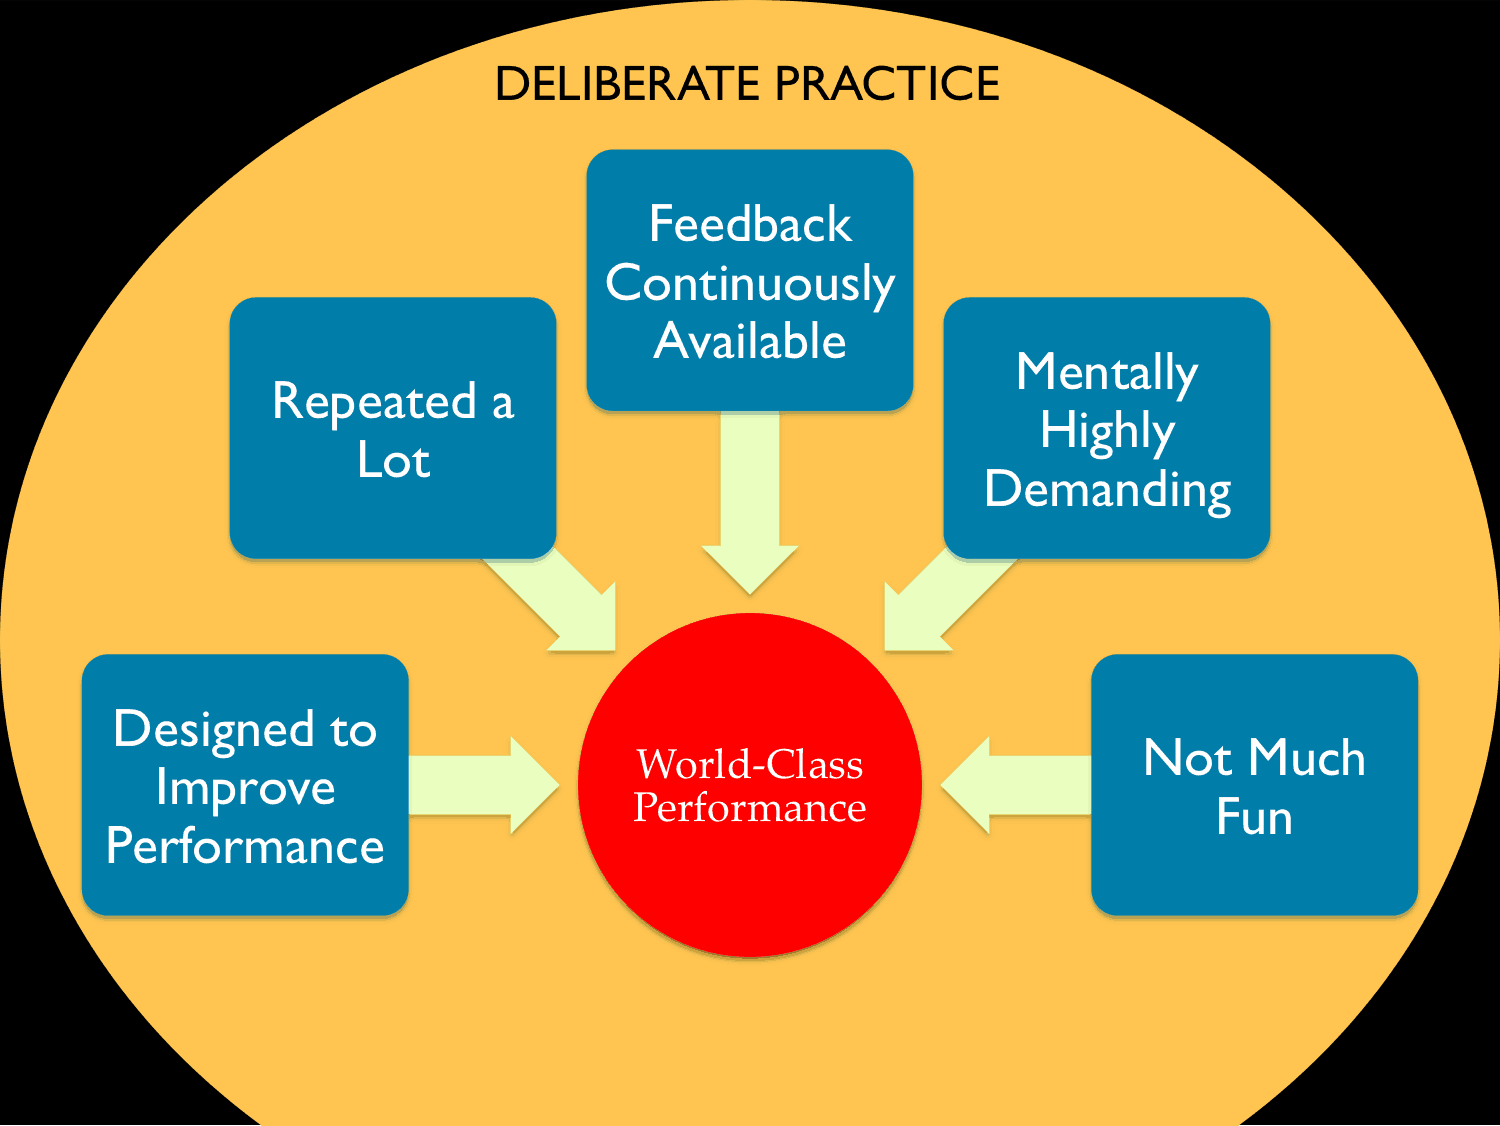 Source: https://www.seytlines.com/2015/04/get-creative-use-deliberate-practice-to-create-world-class-performance/